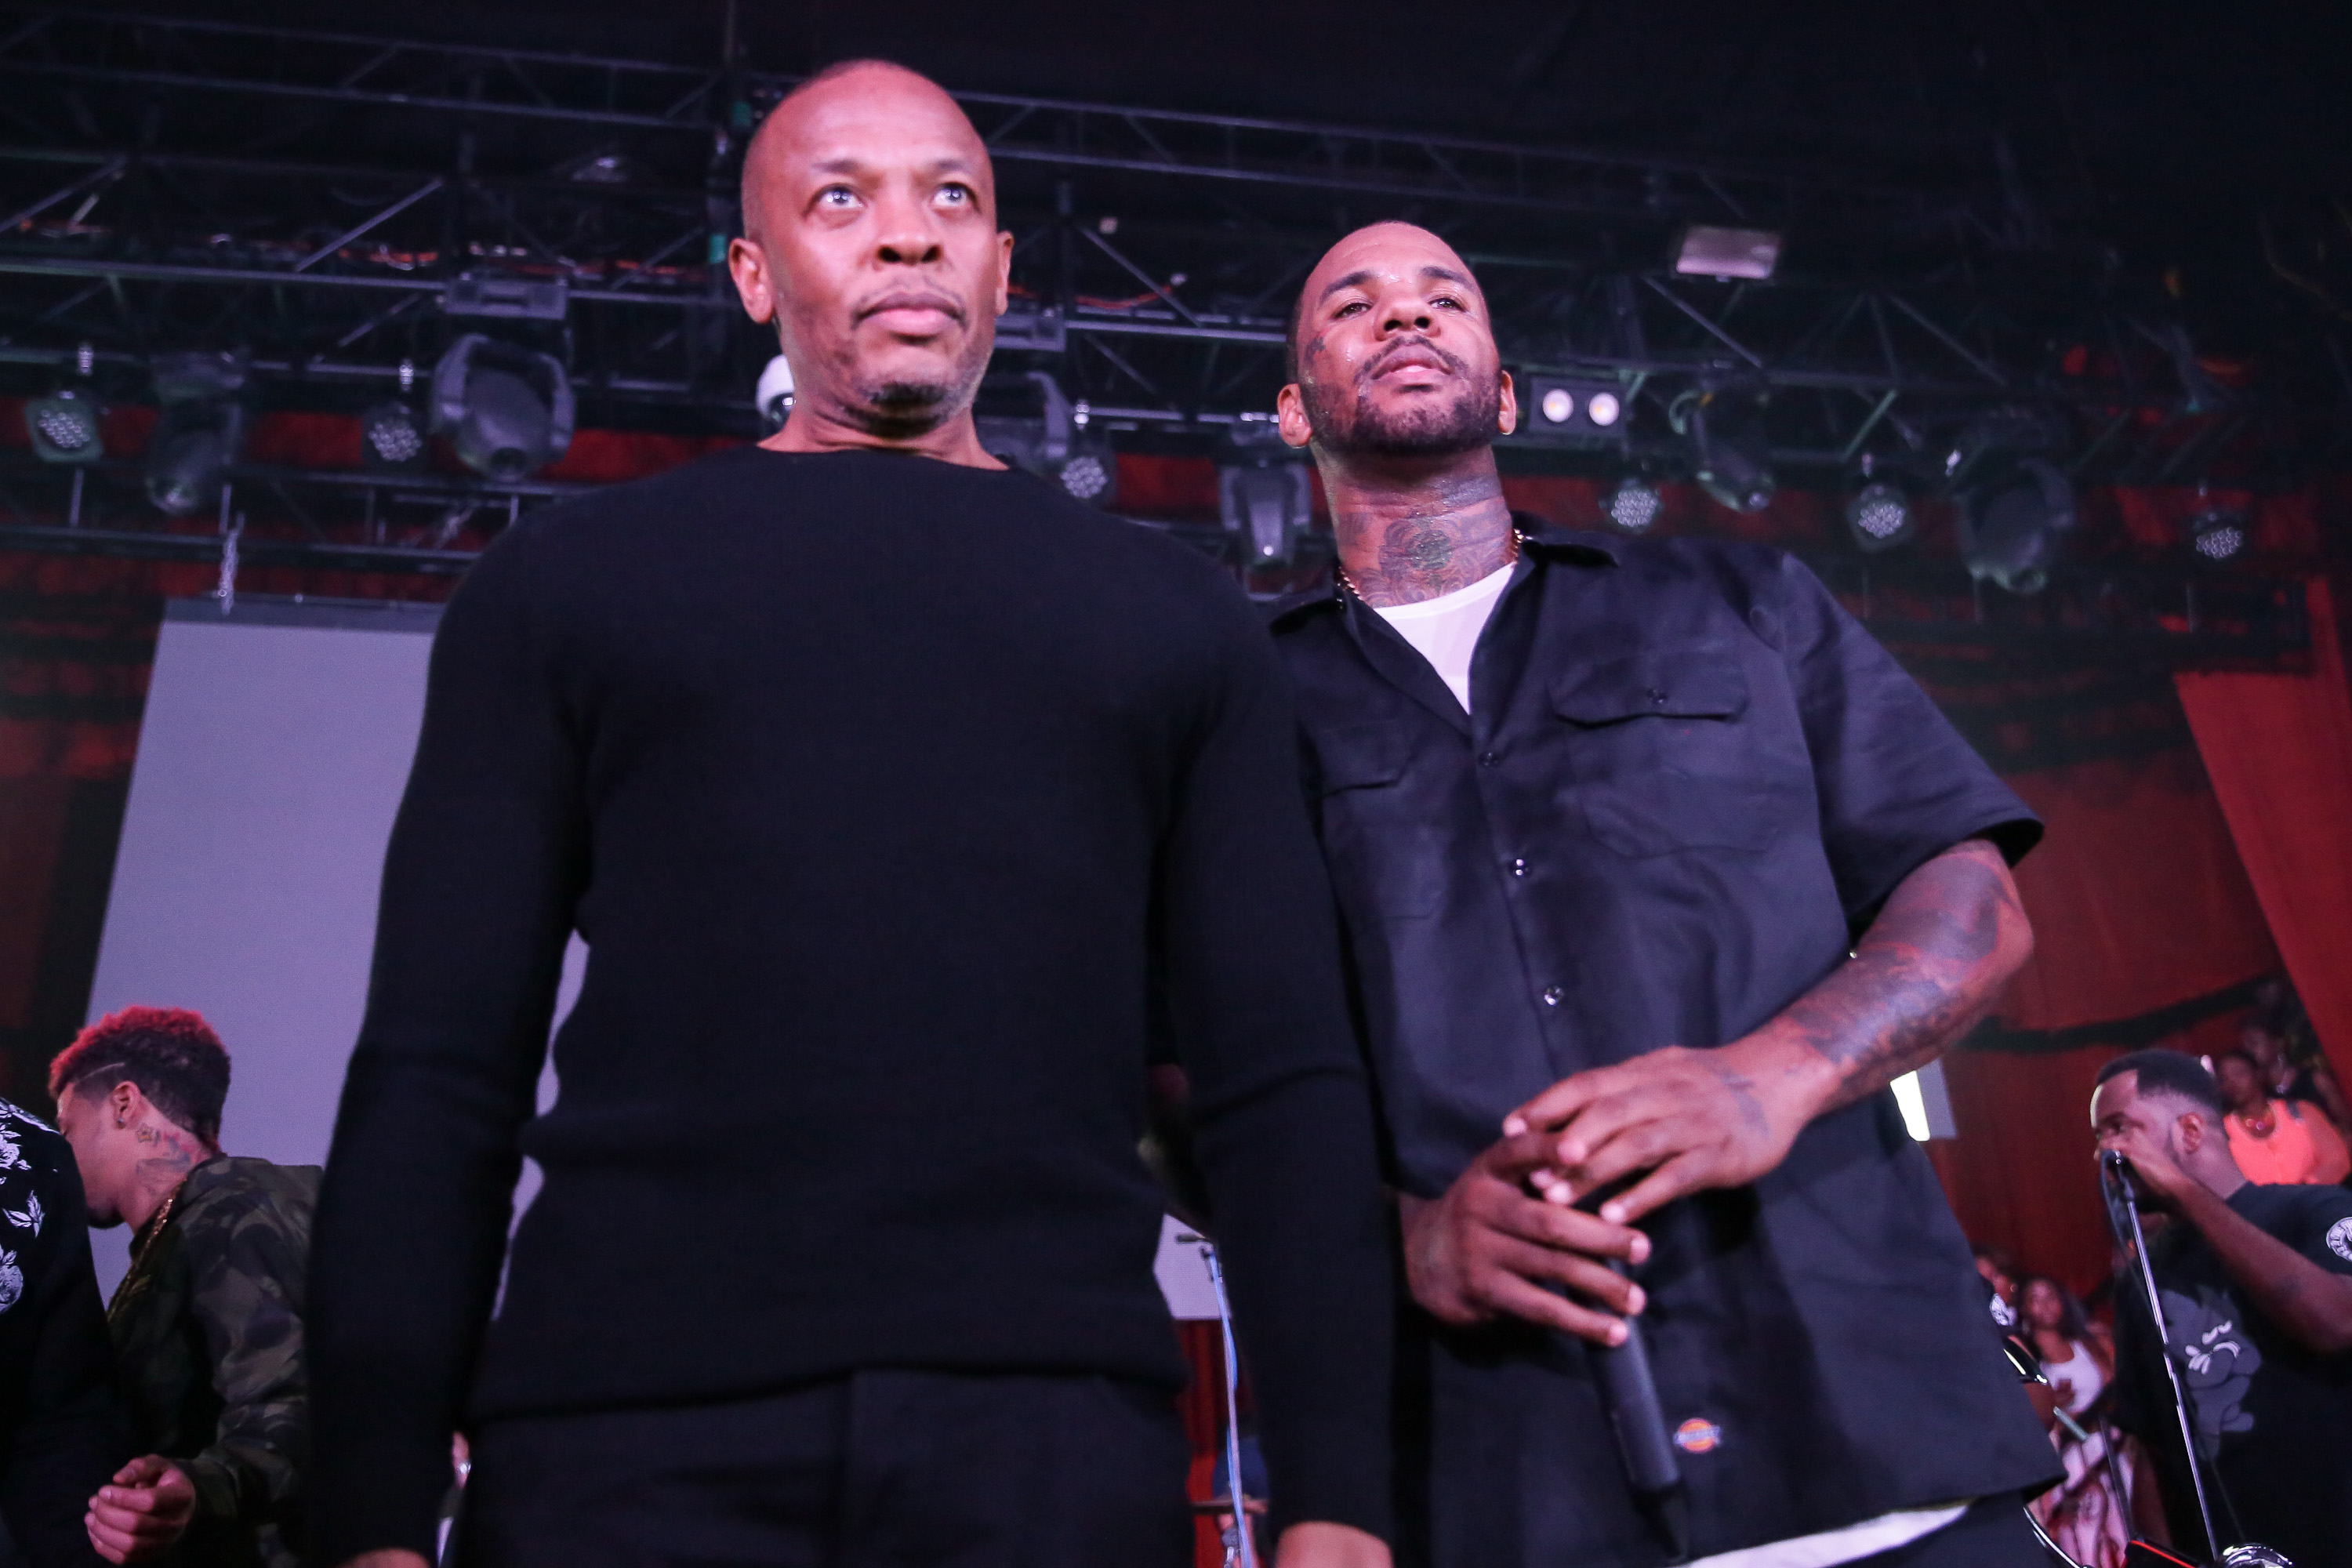 Dr. Dre and The Game